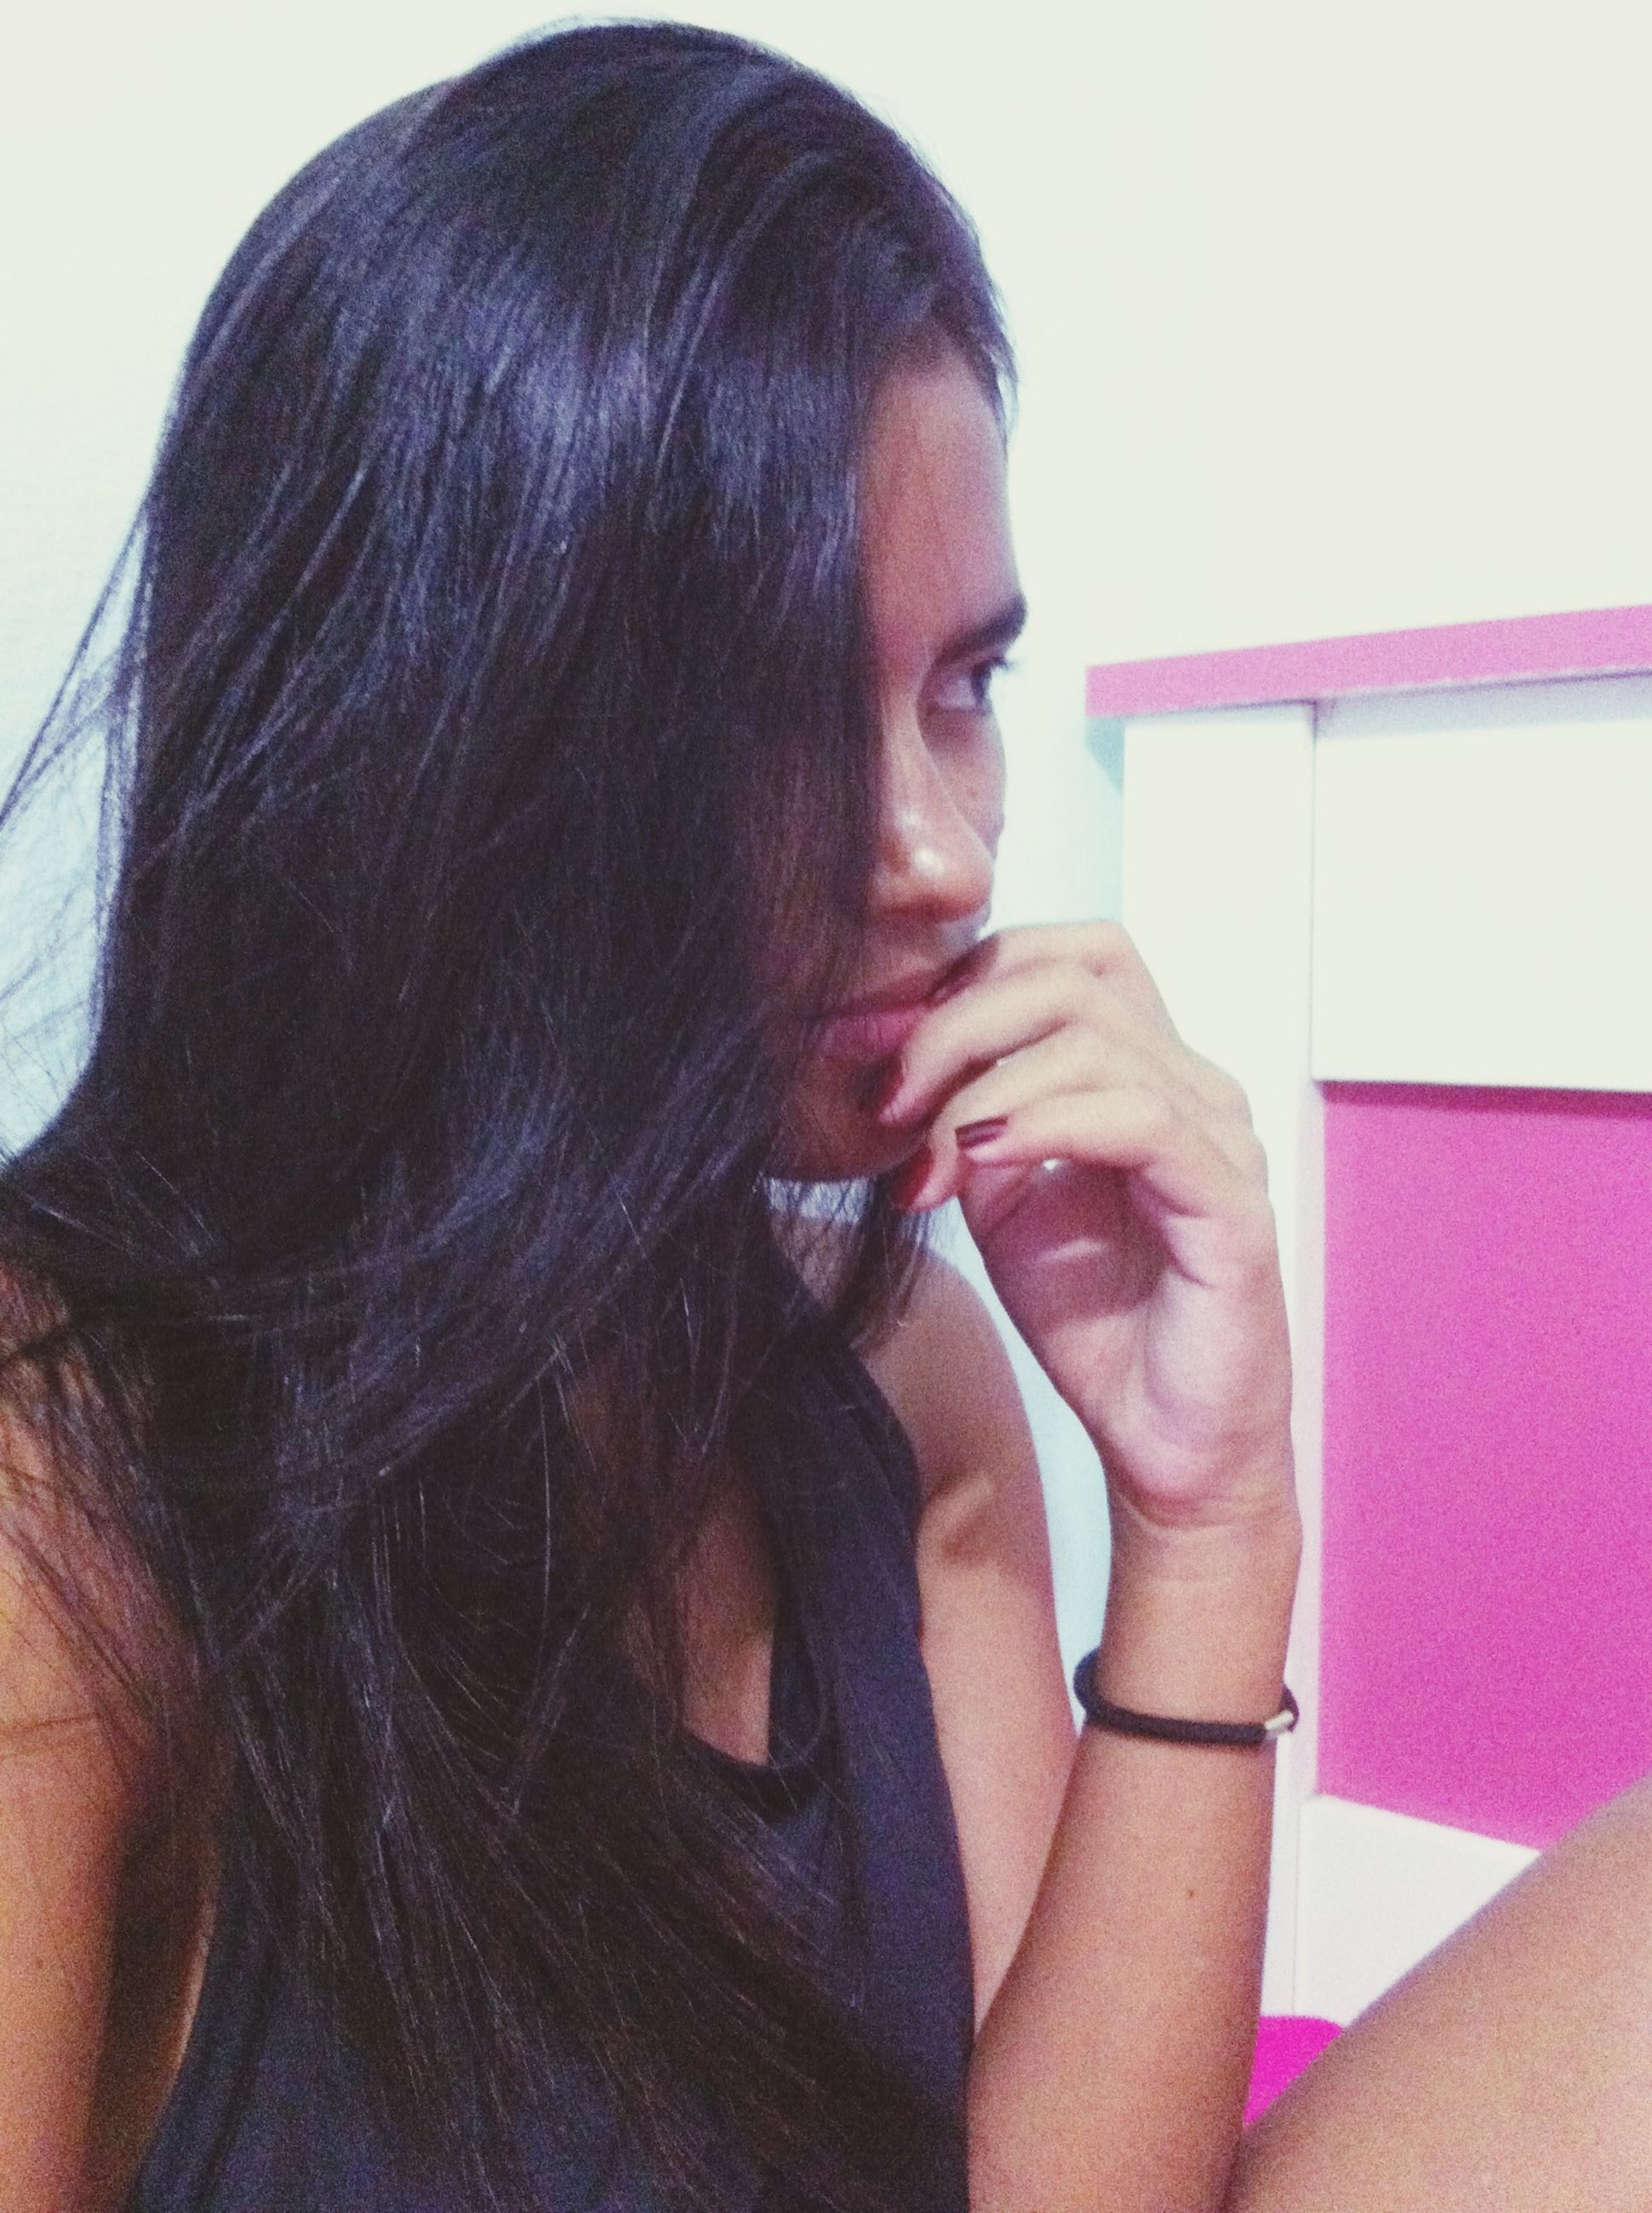 young adult, young women, person, headshot, long hair, lifestyles, indoors, front view, portrait, casual clothing, leisure activity, looking at camera, black hair, head and shoulders, close-up, contemplation